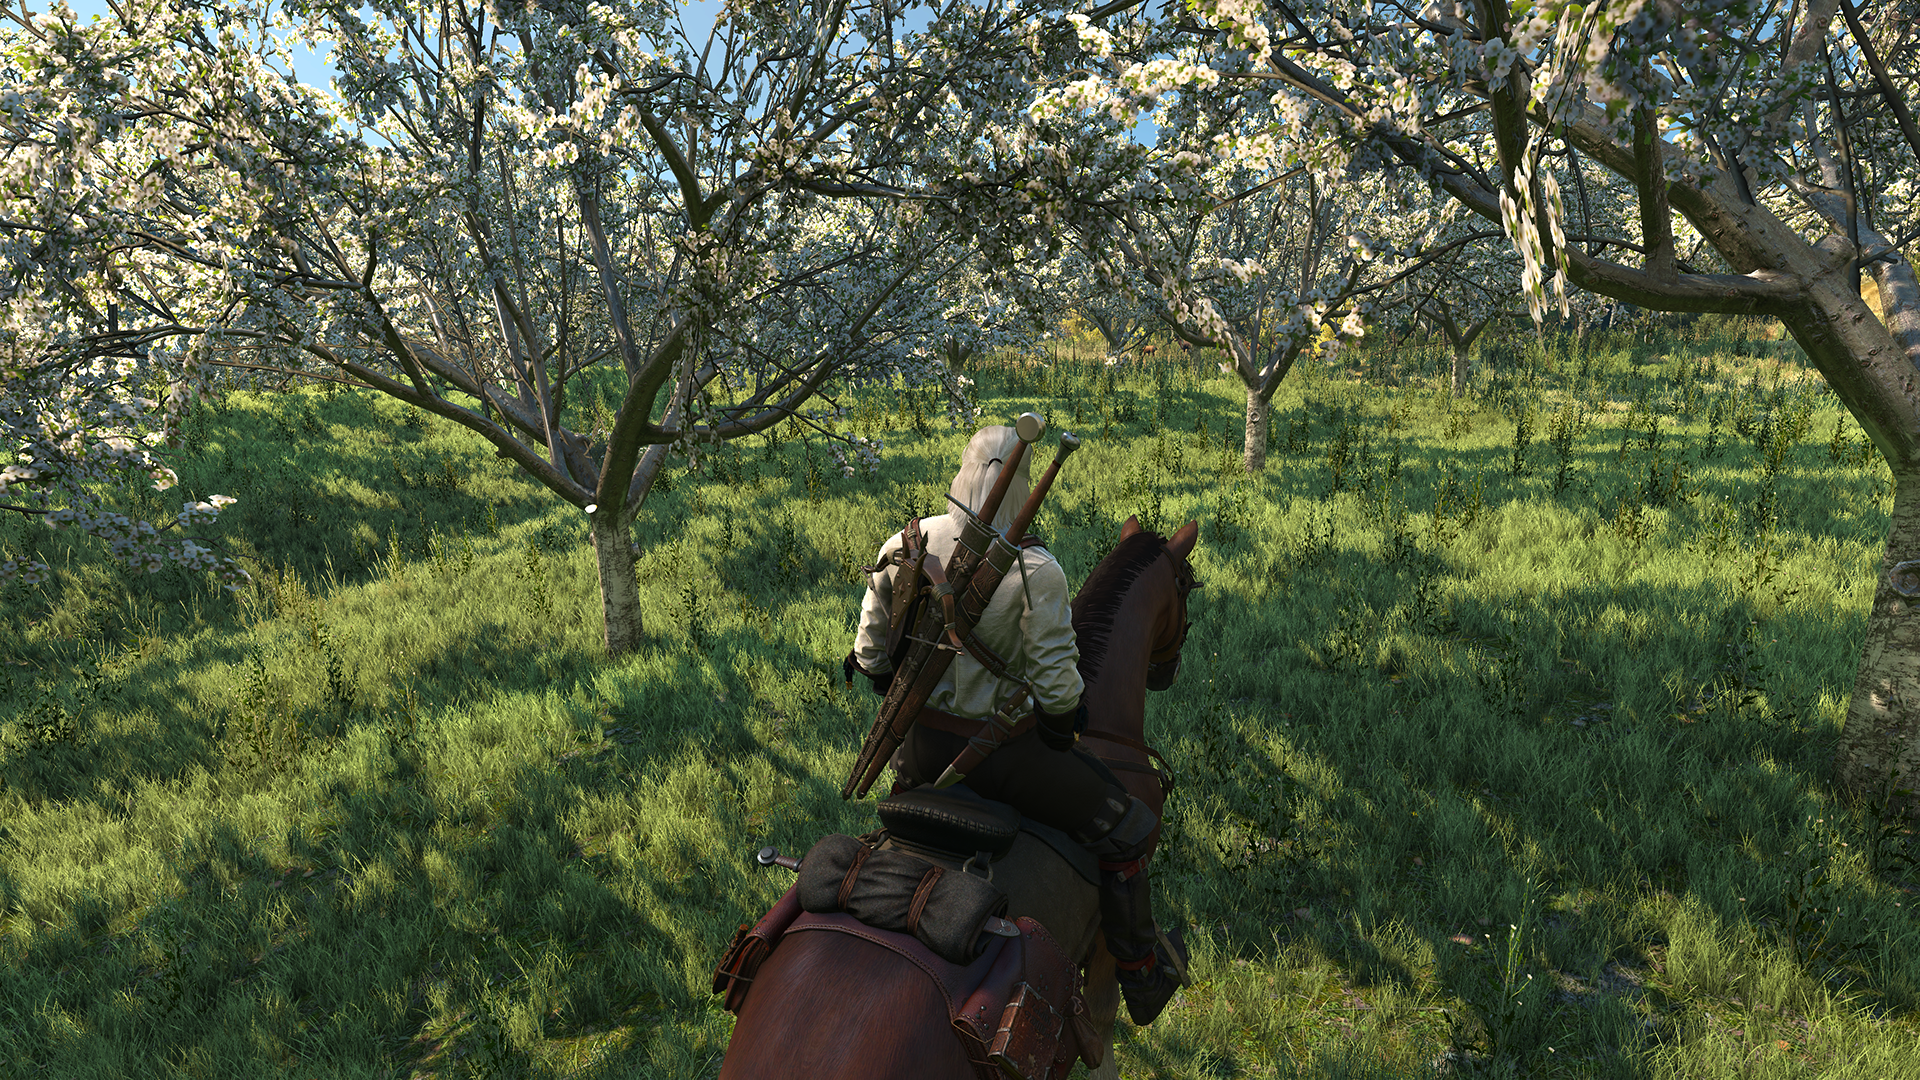 Beautiful Grass mod for The Witcher 3: Wild Hunt - Mod DB